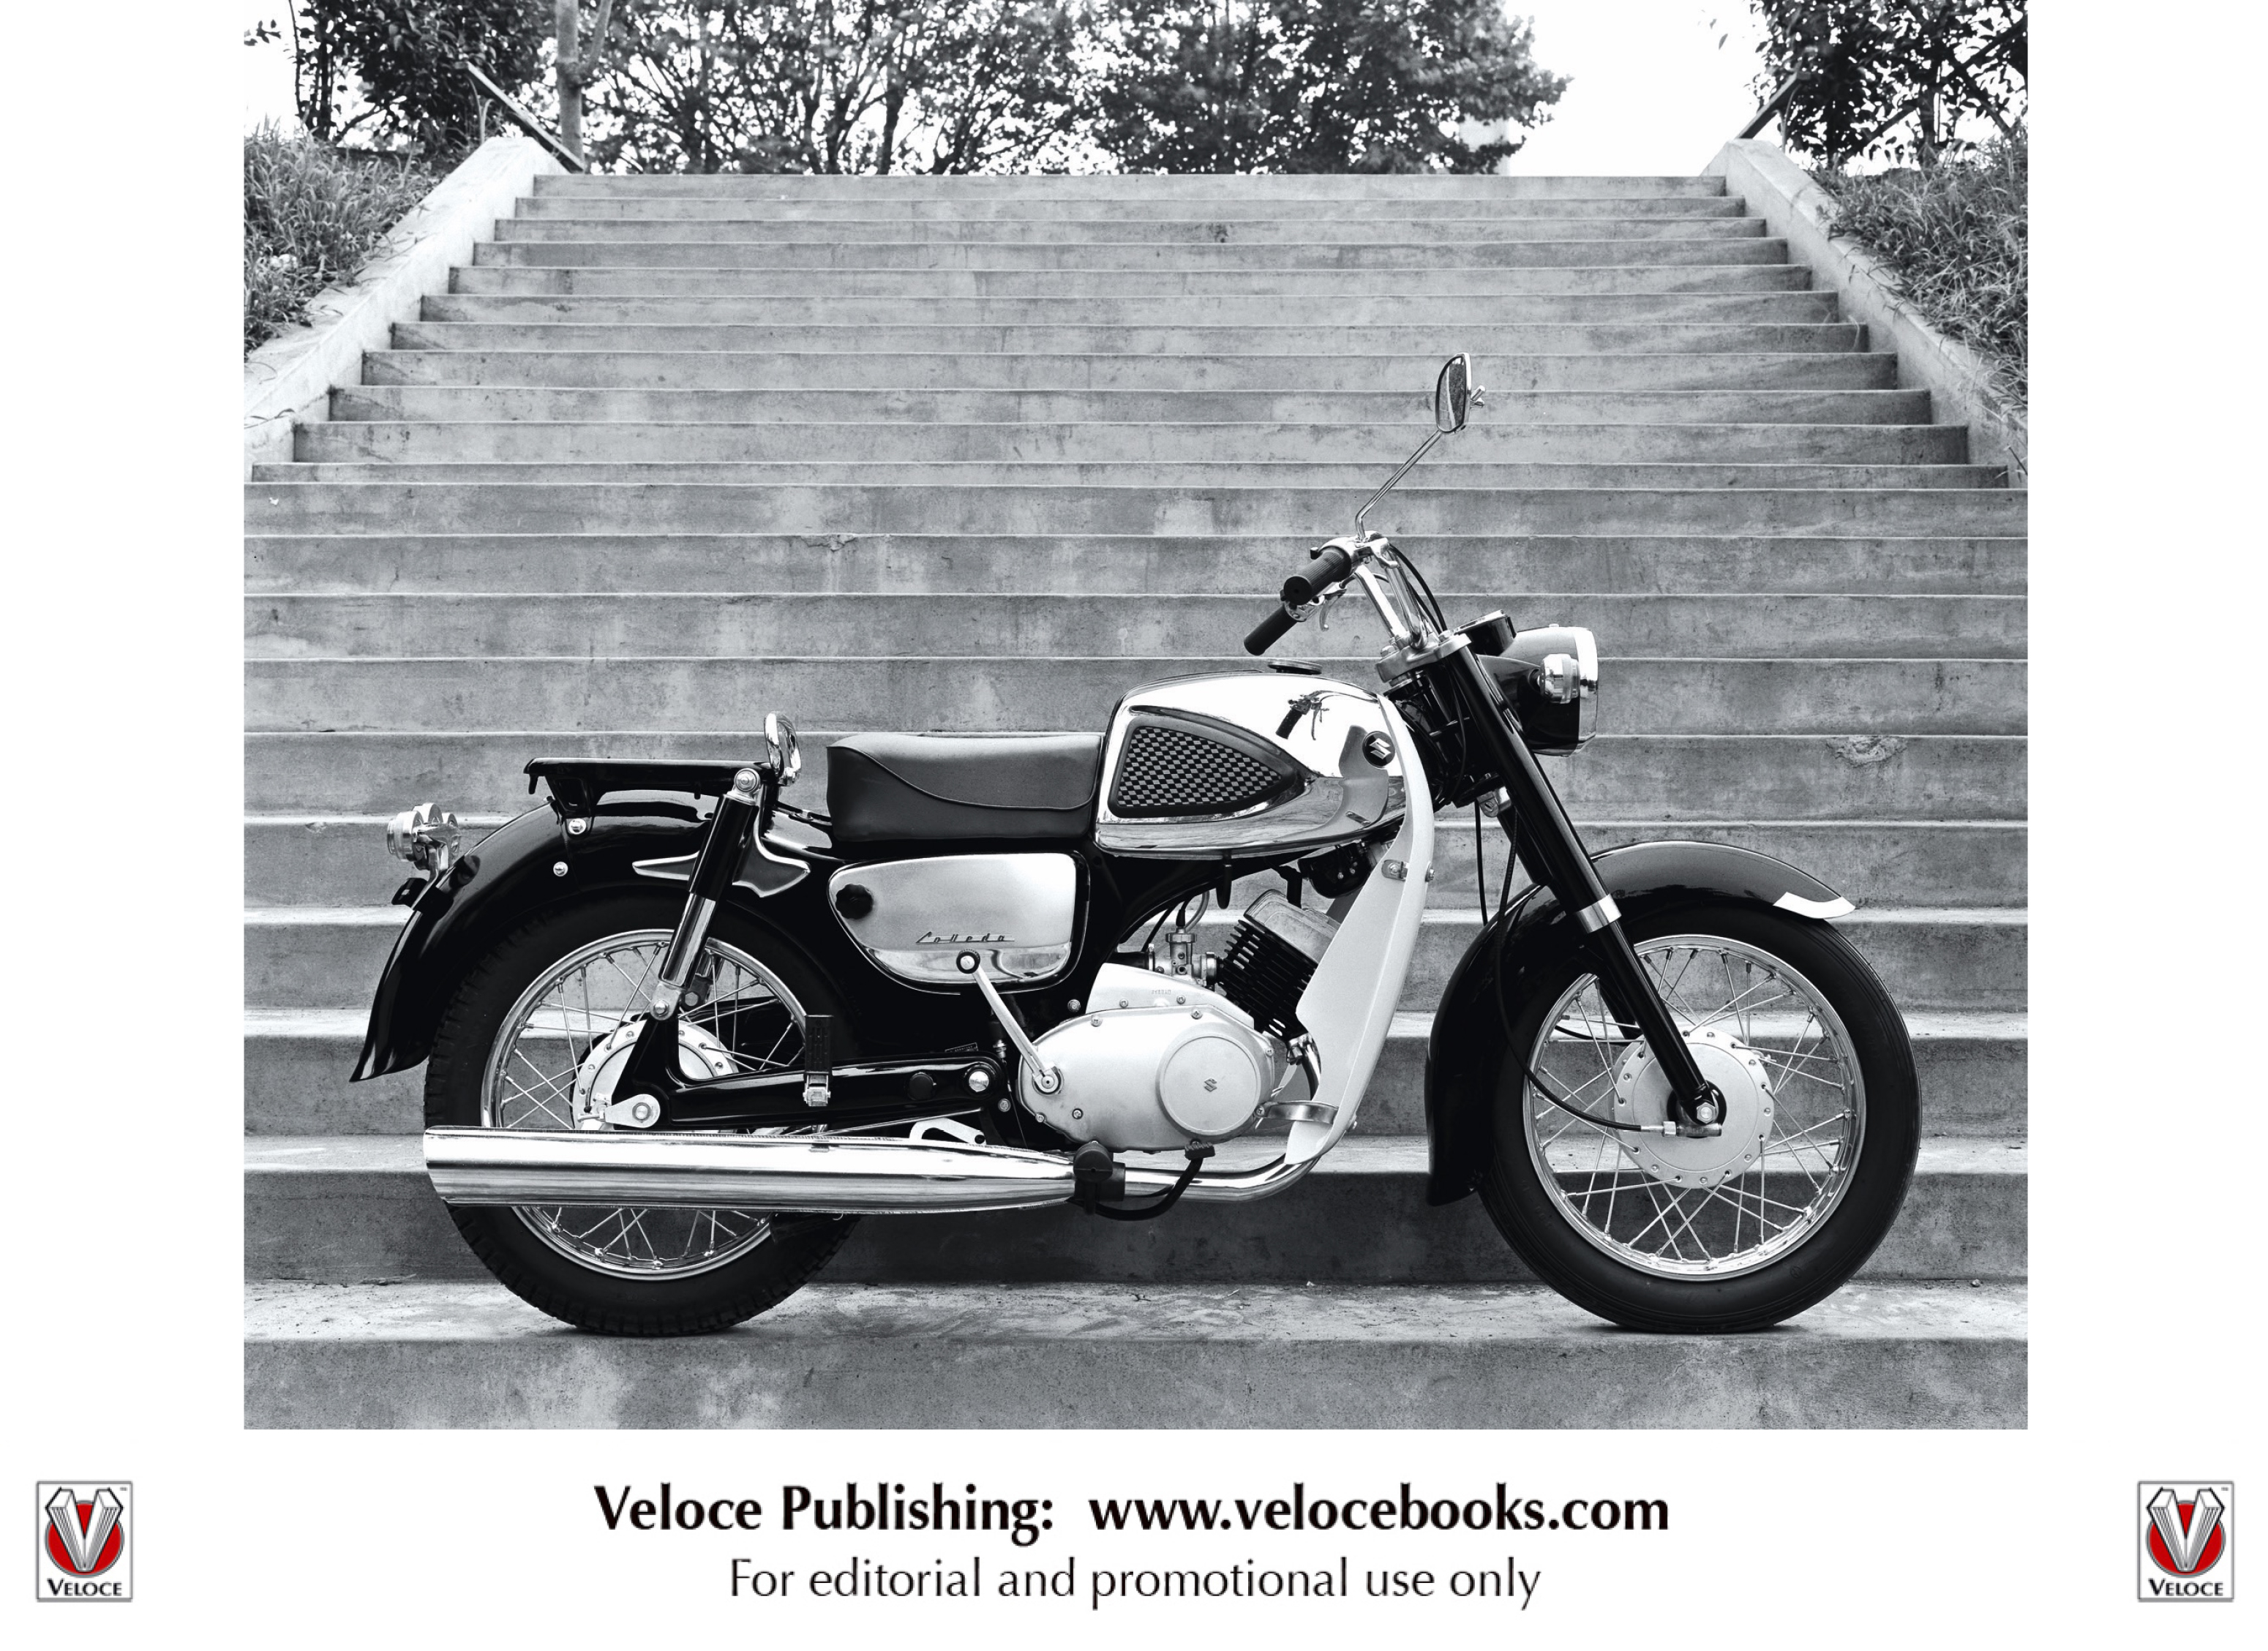 Suzuki Motorcycles - The Classic Two-stroke Era – by Brian Long